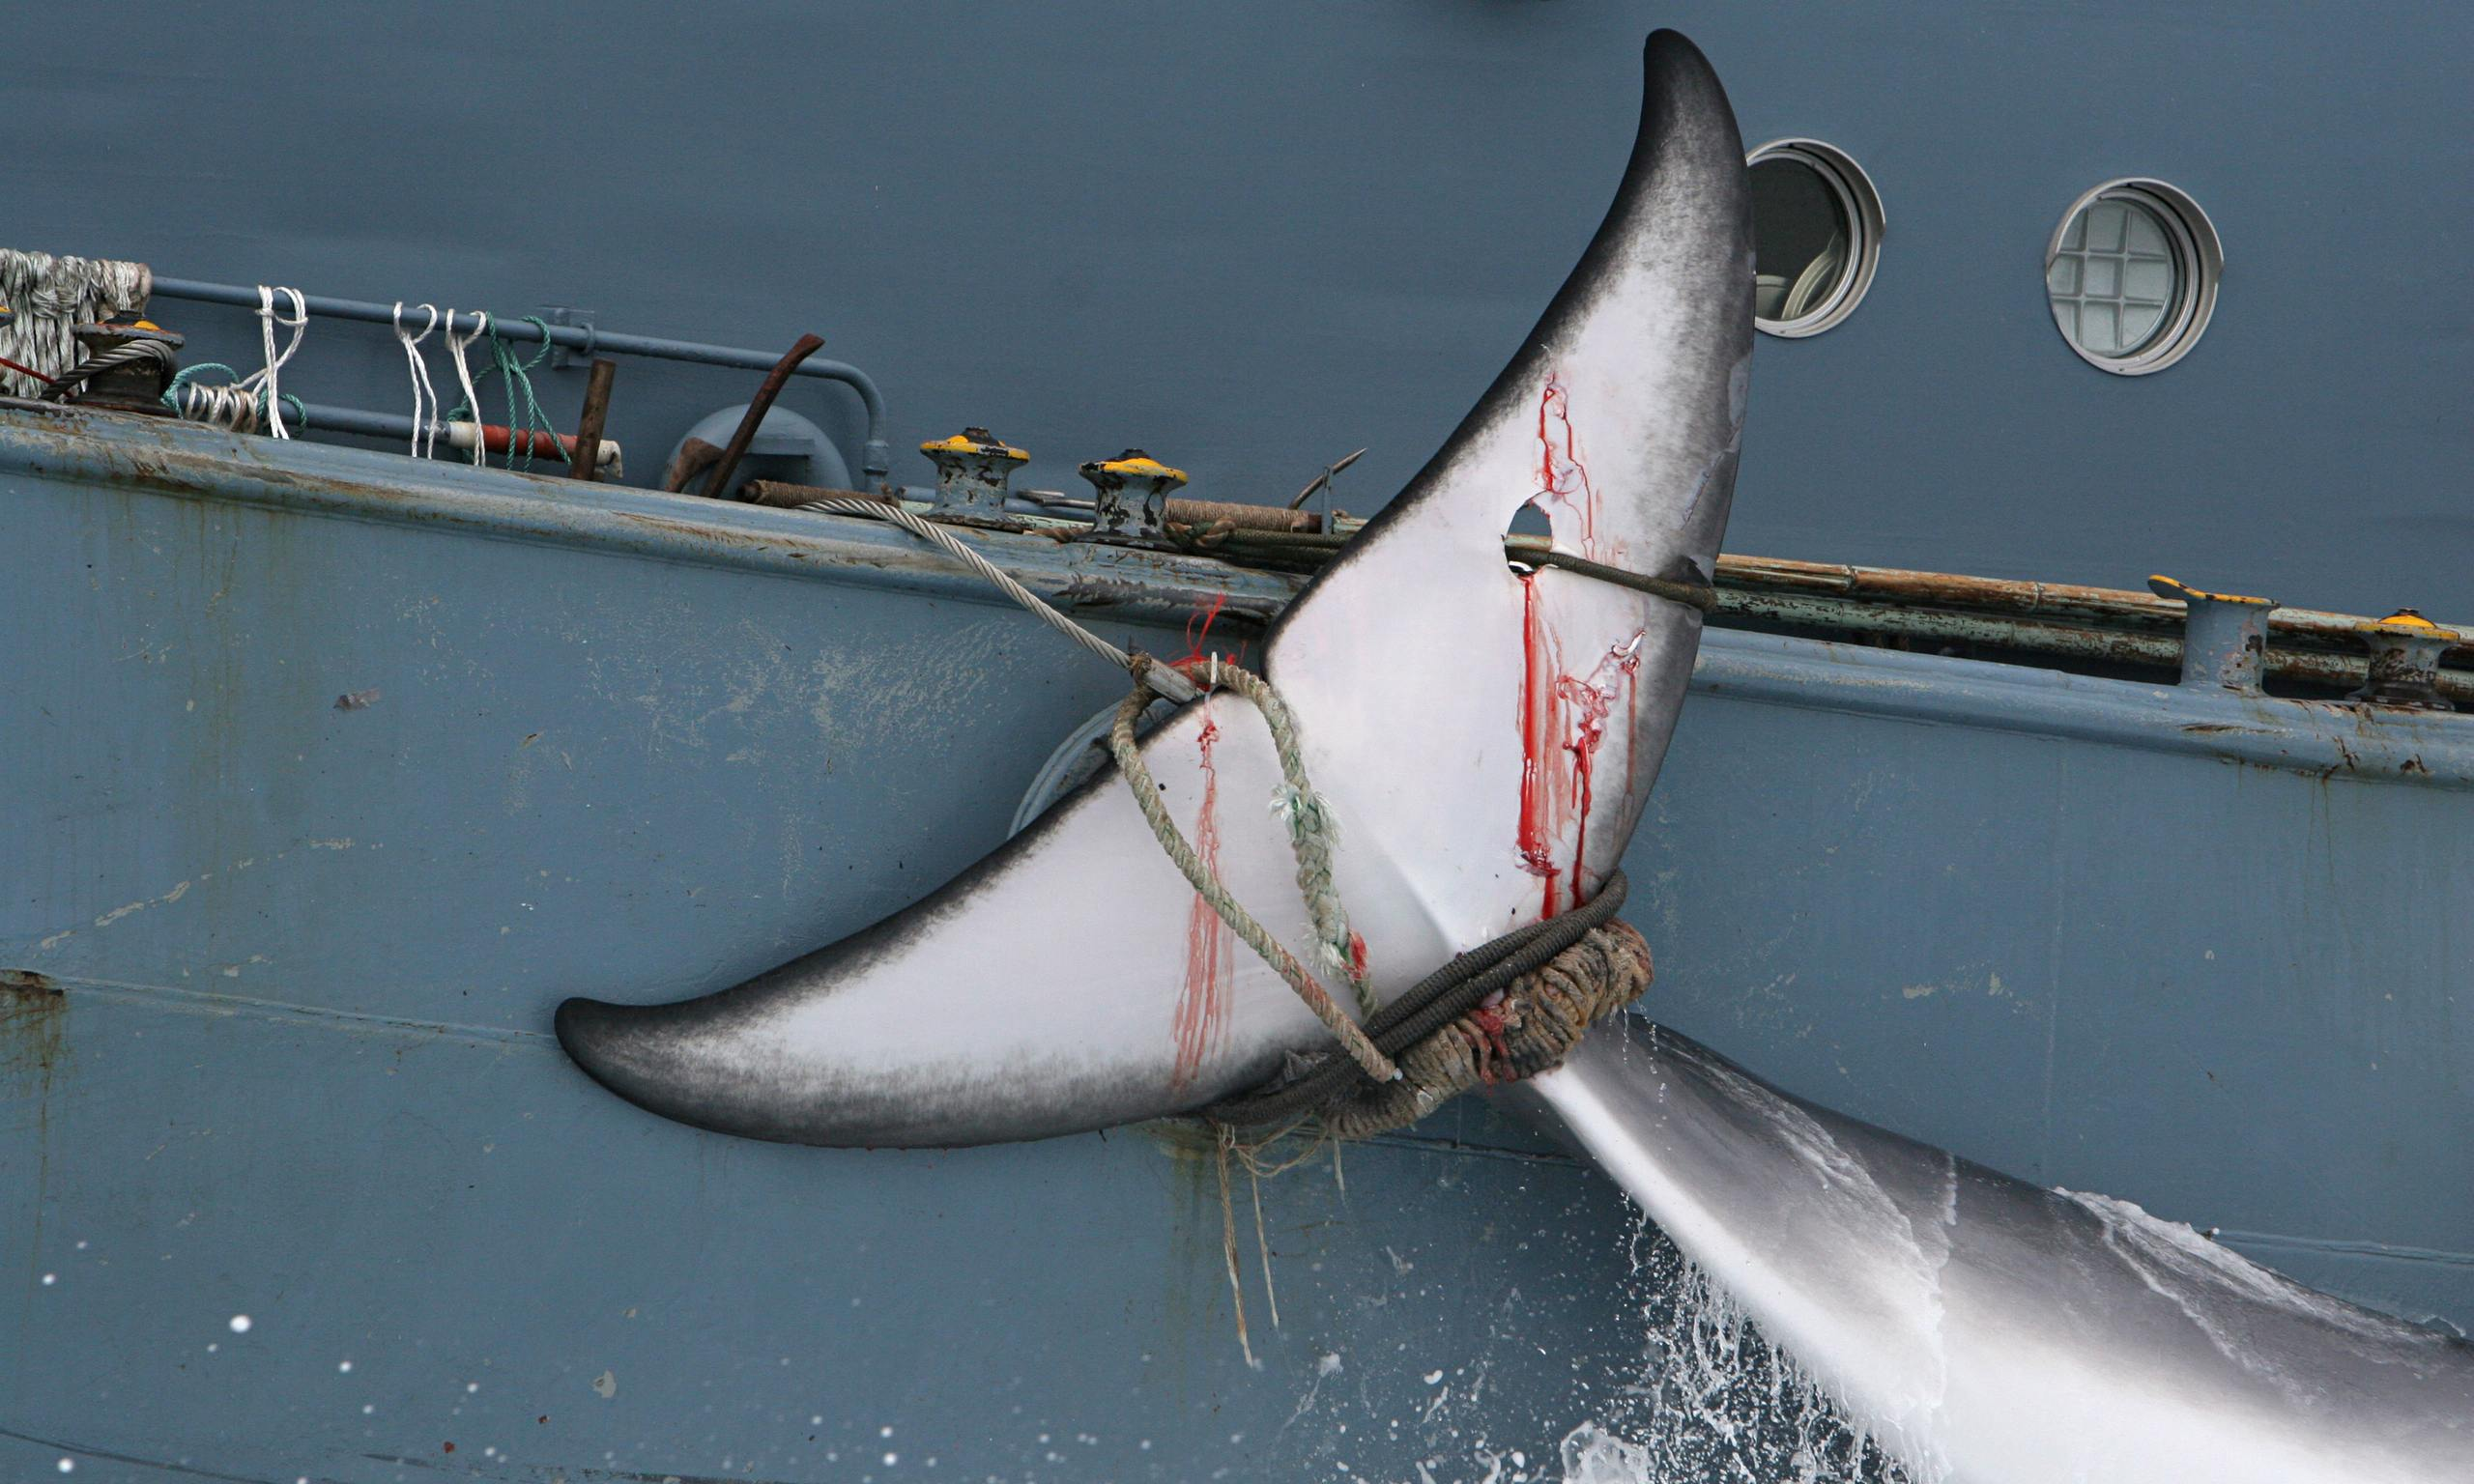 japanese whaling Japanese whaling was a largely unrecognized issue until a few years ago, when  increased protests by environmental groups forced acknowledgement from the.